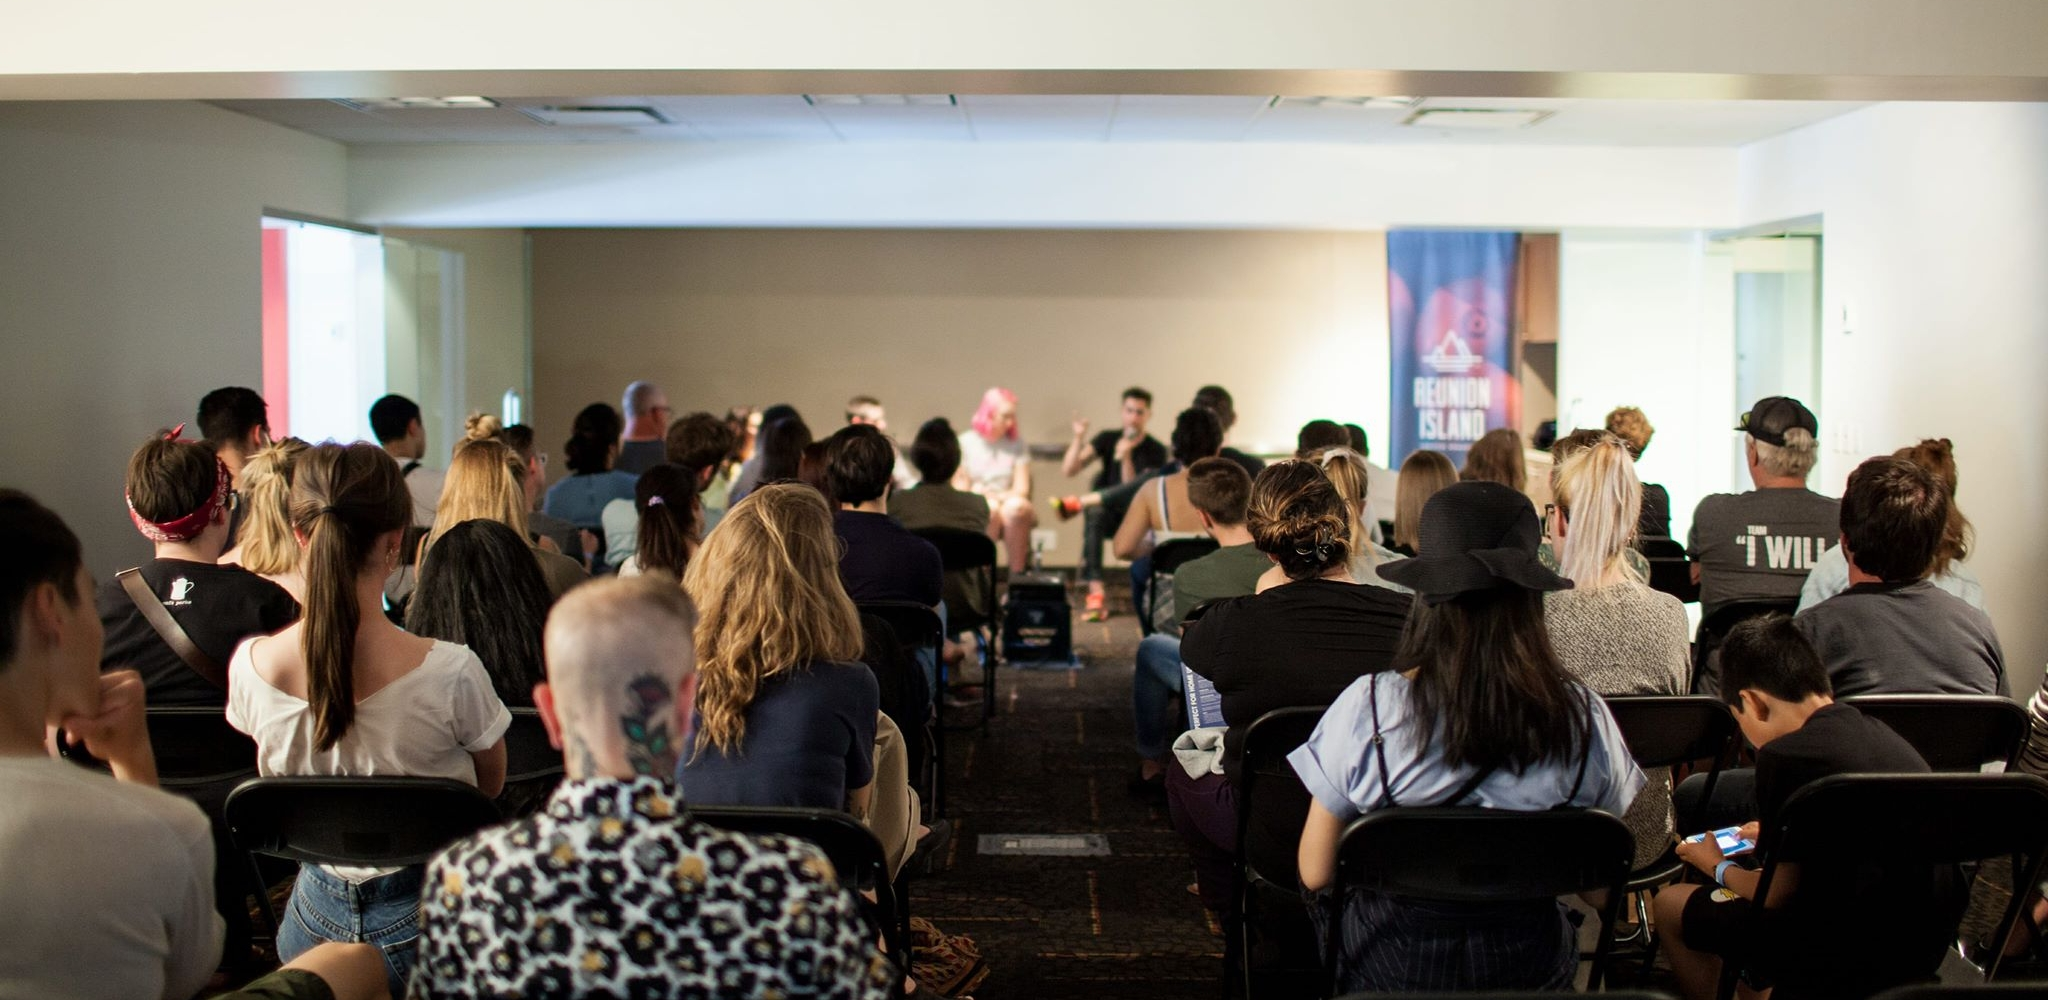 Specialty Coffee Association Panel Discussion about How to Have a Career in Coffee. Photo: Britney Townsend @bheathertownsend